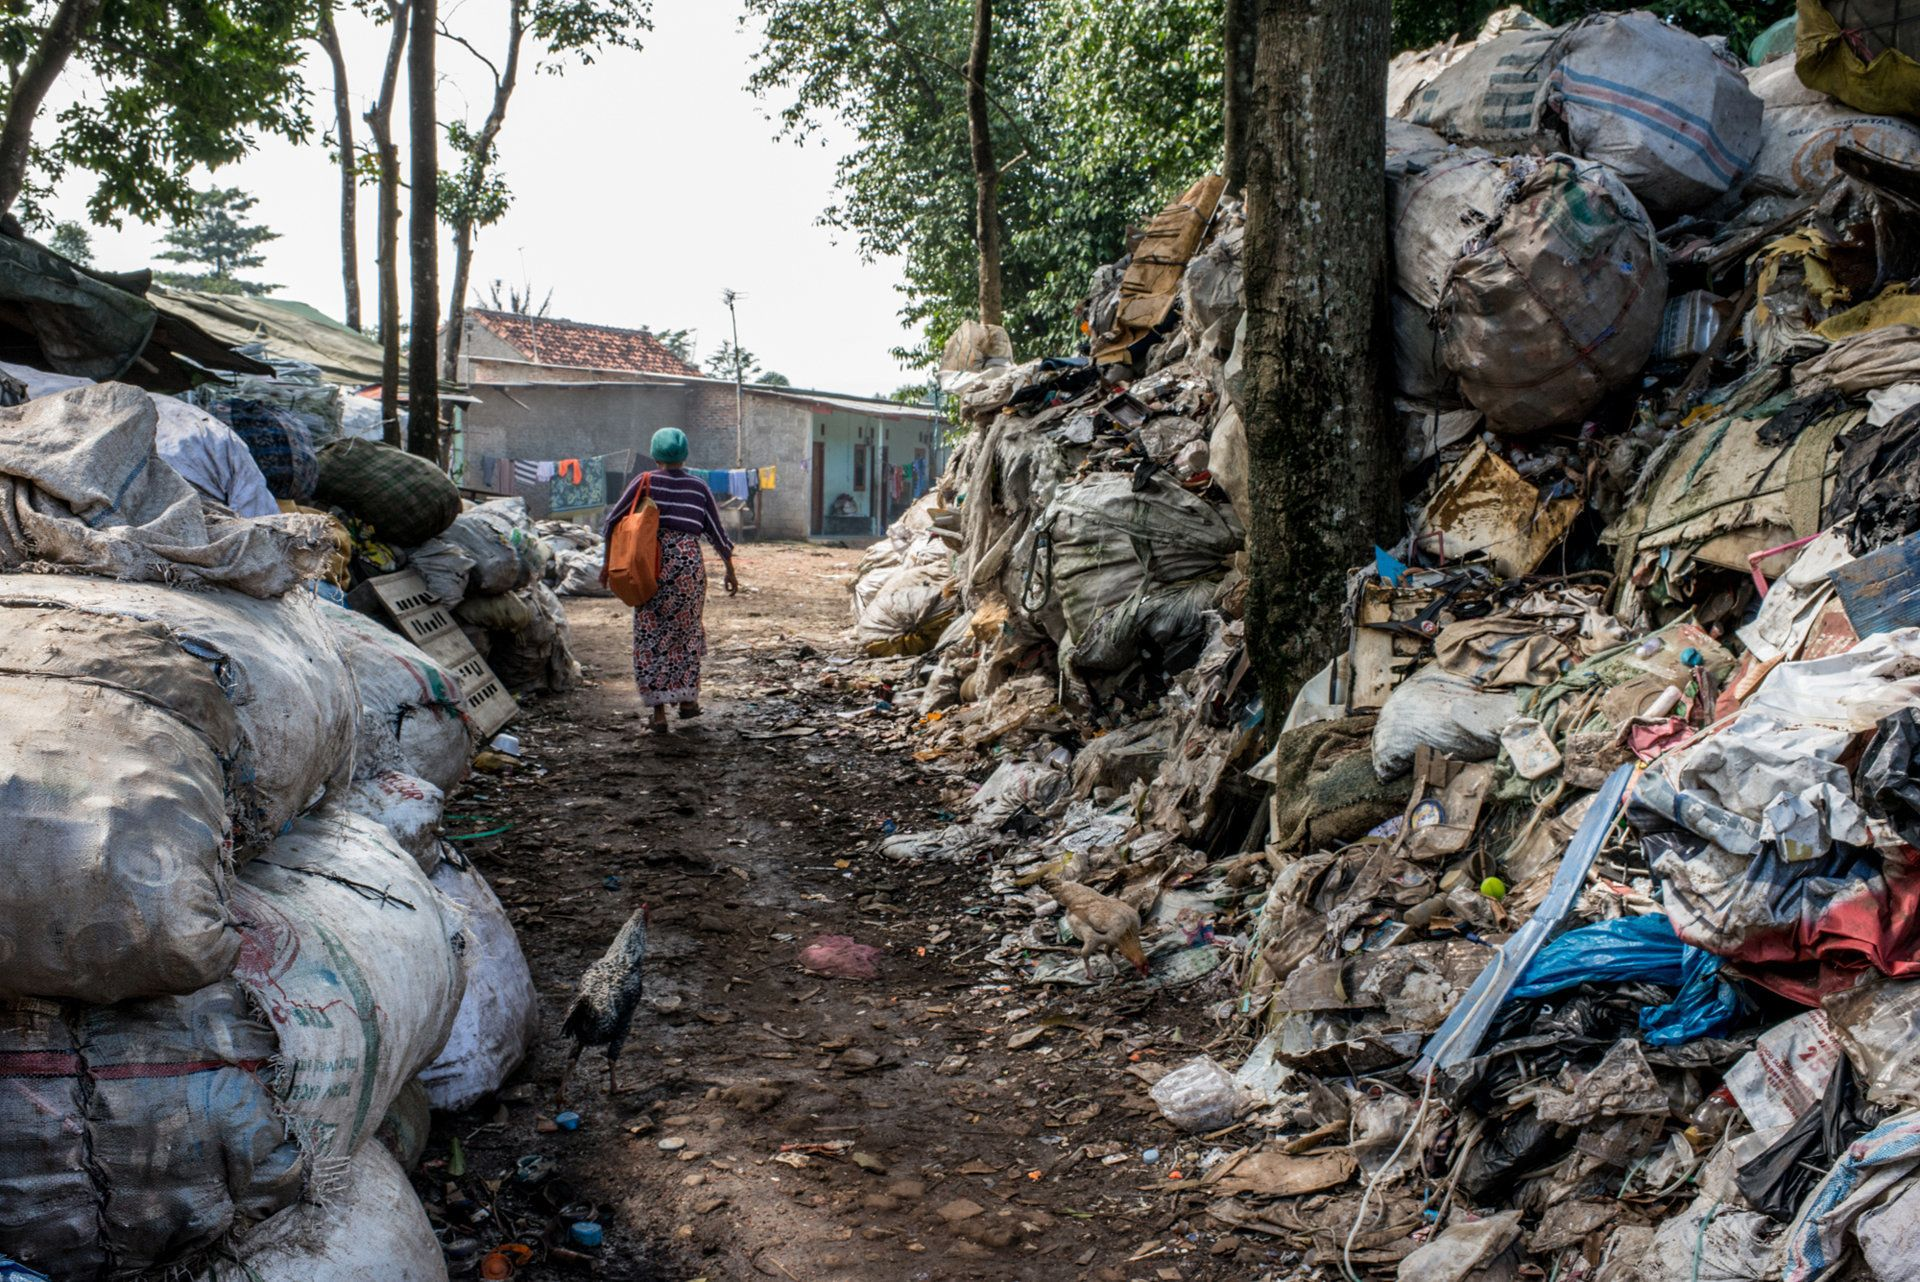 Mak Muji walks through heaps of waste on her way to one of the landfill villages. The orange bag slung over her shoulder hold